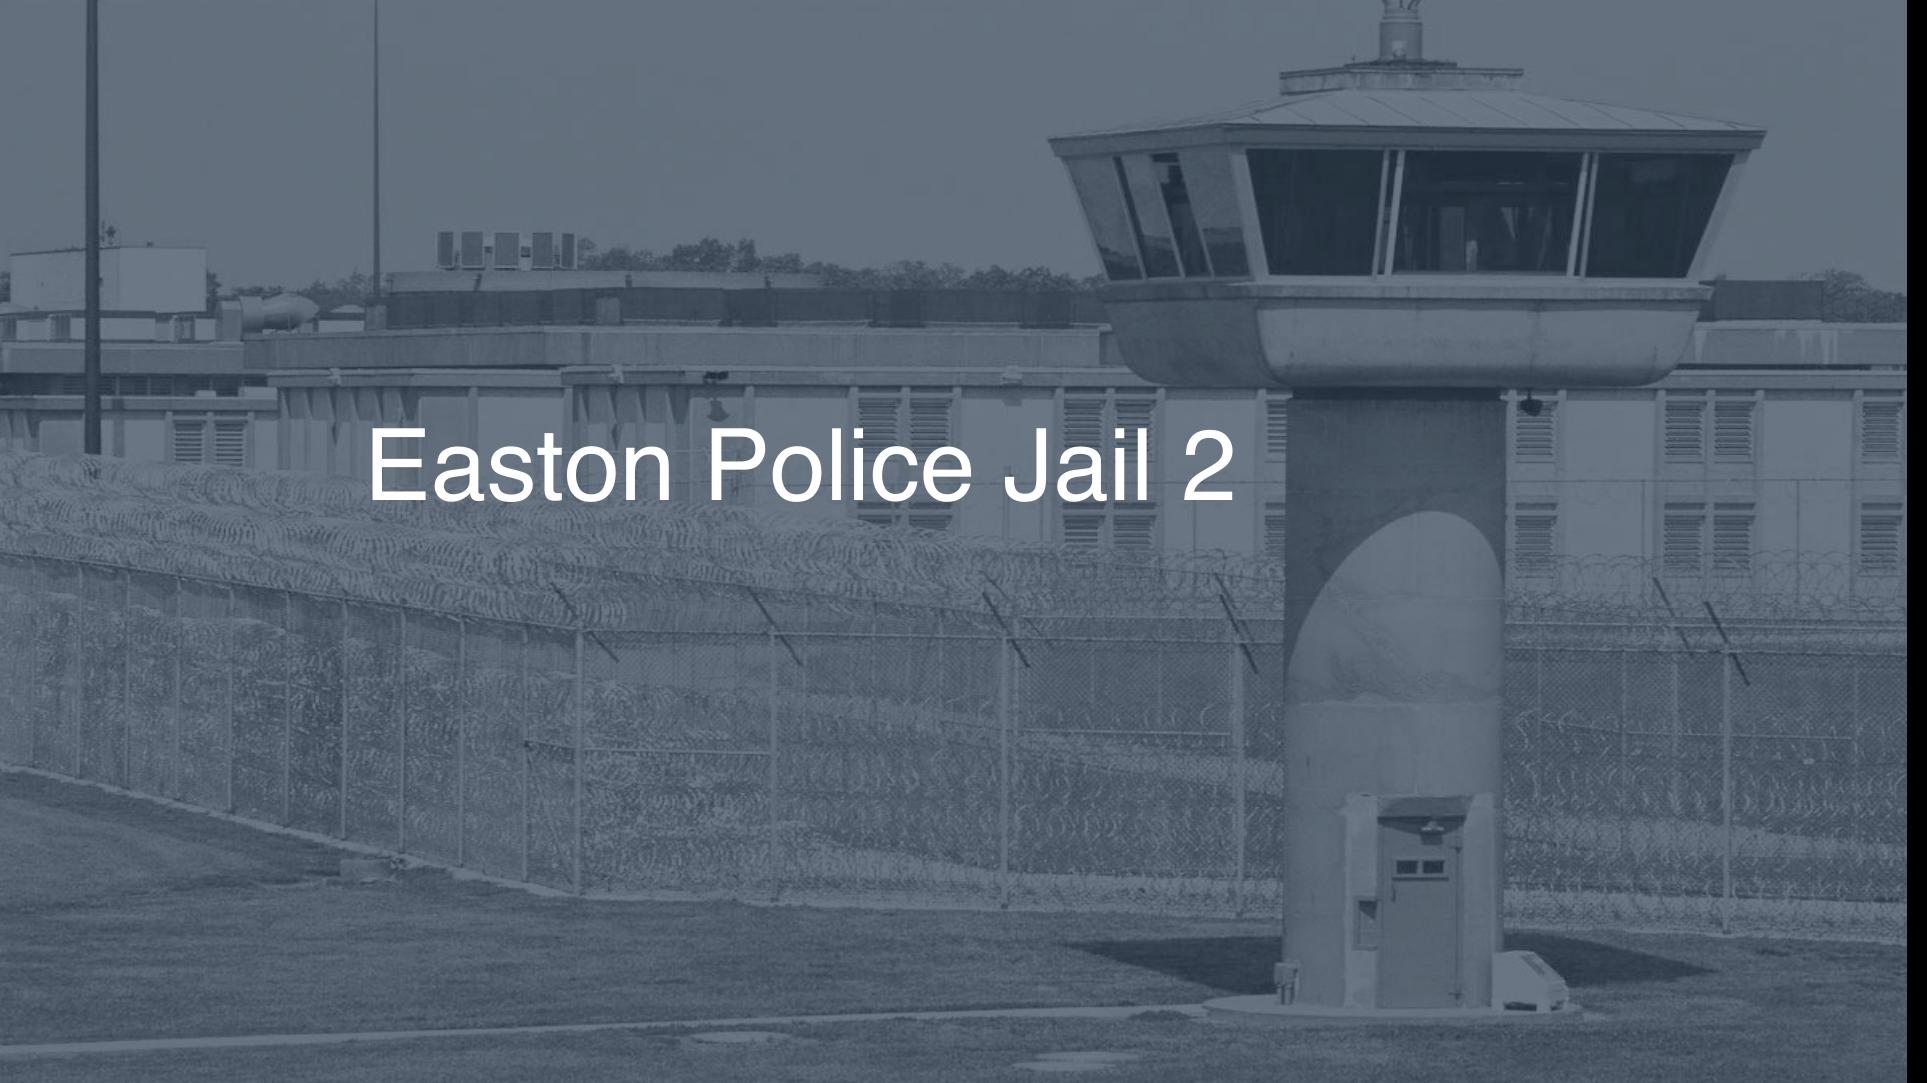 Easton Police Jail correctional facility picture